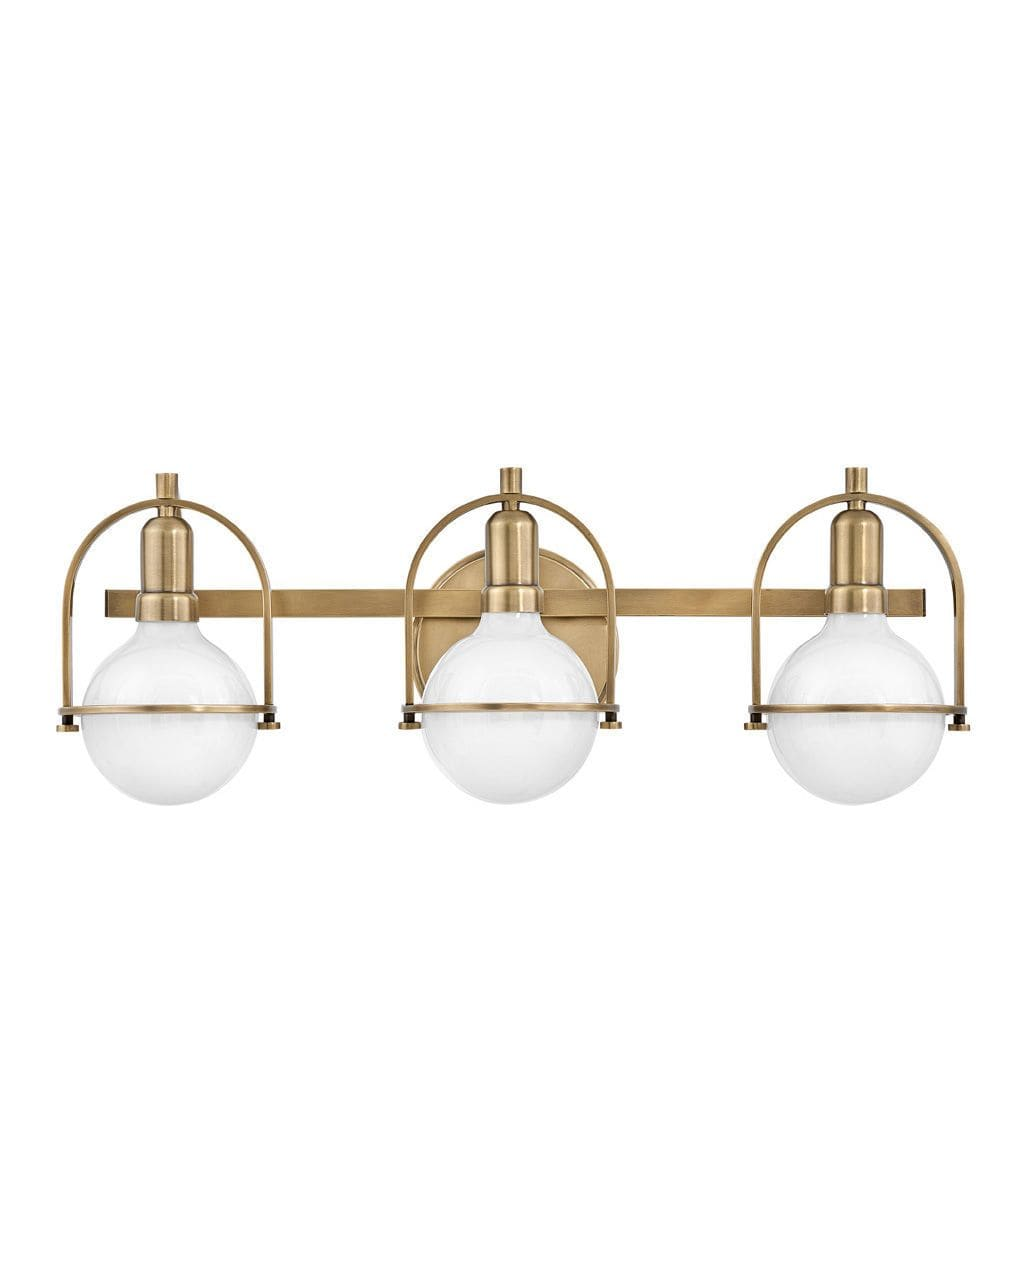 Interior Wall Light / Sconce Somerset Triple Vanity Sconce